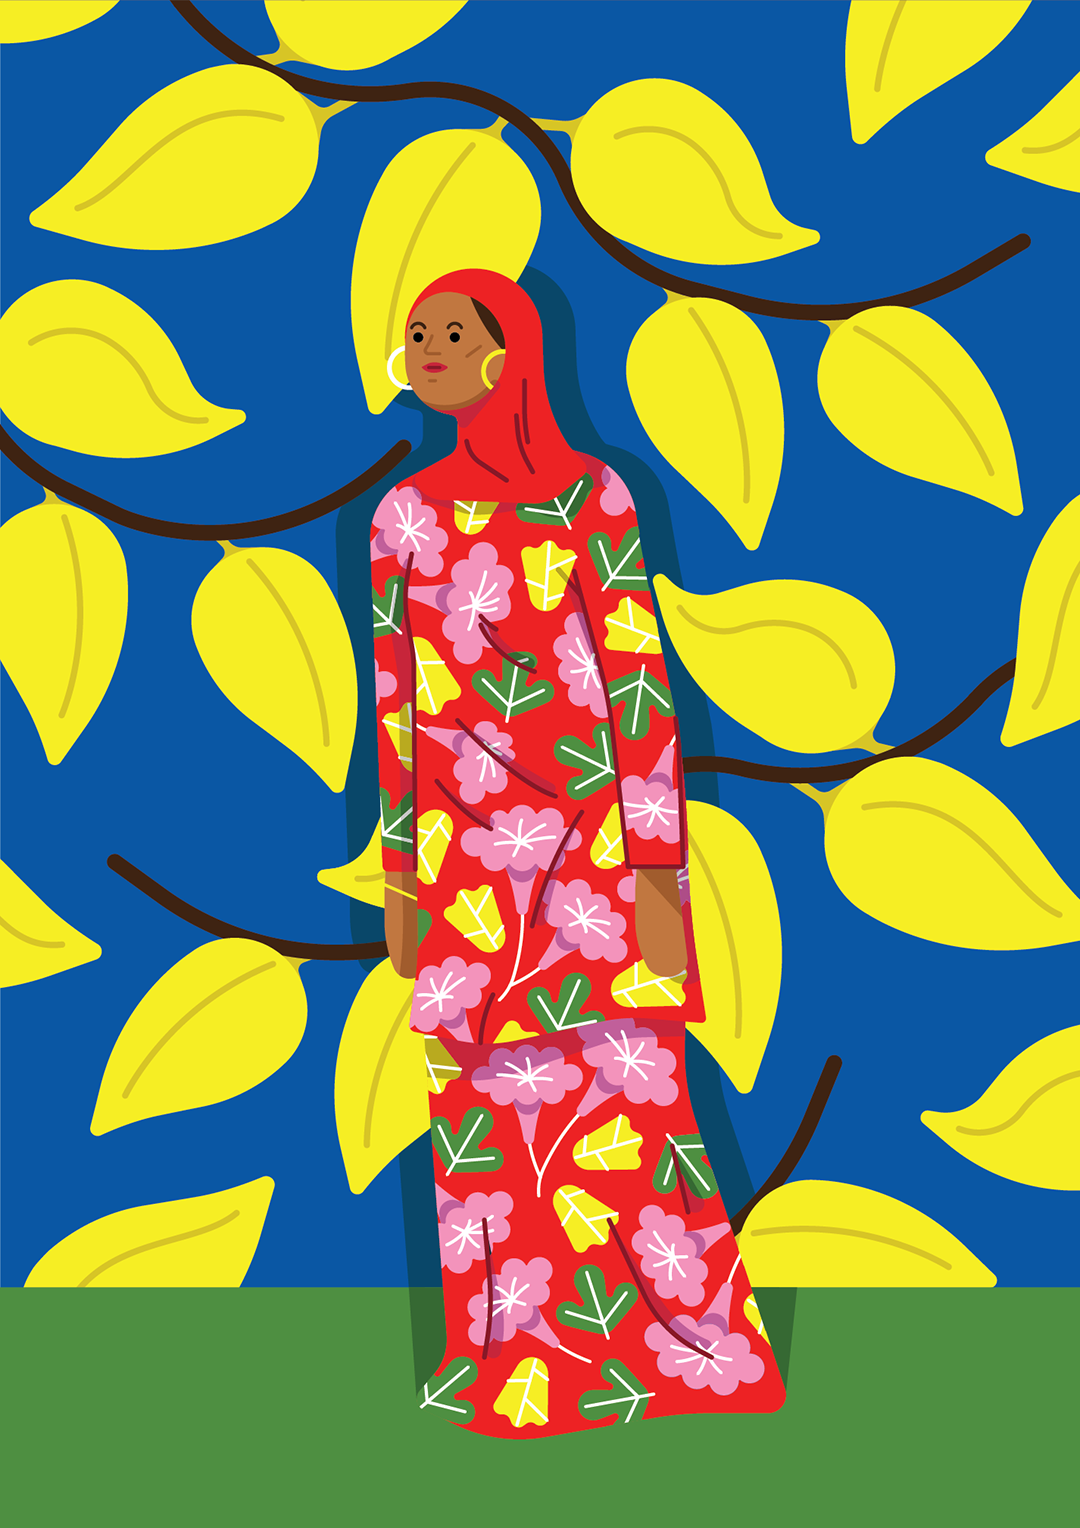 Colorful illustrations by Kiki Ljung